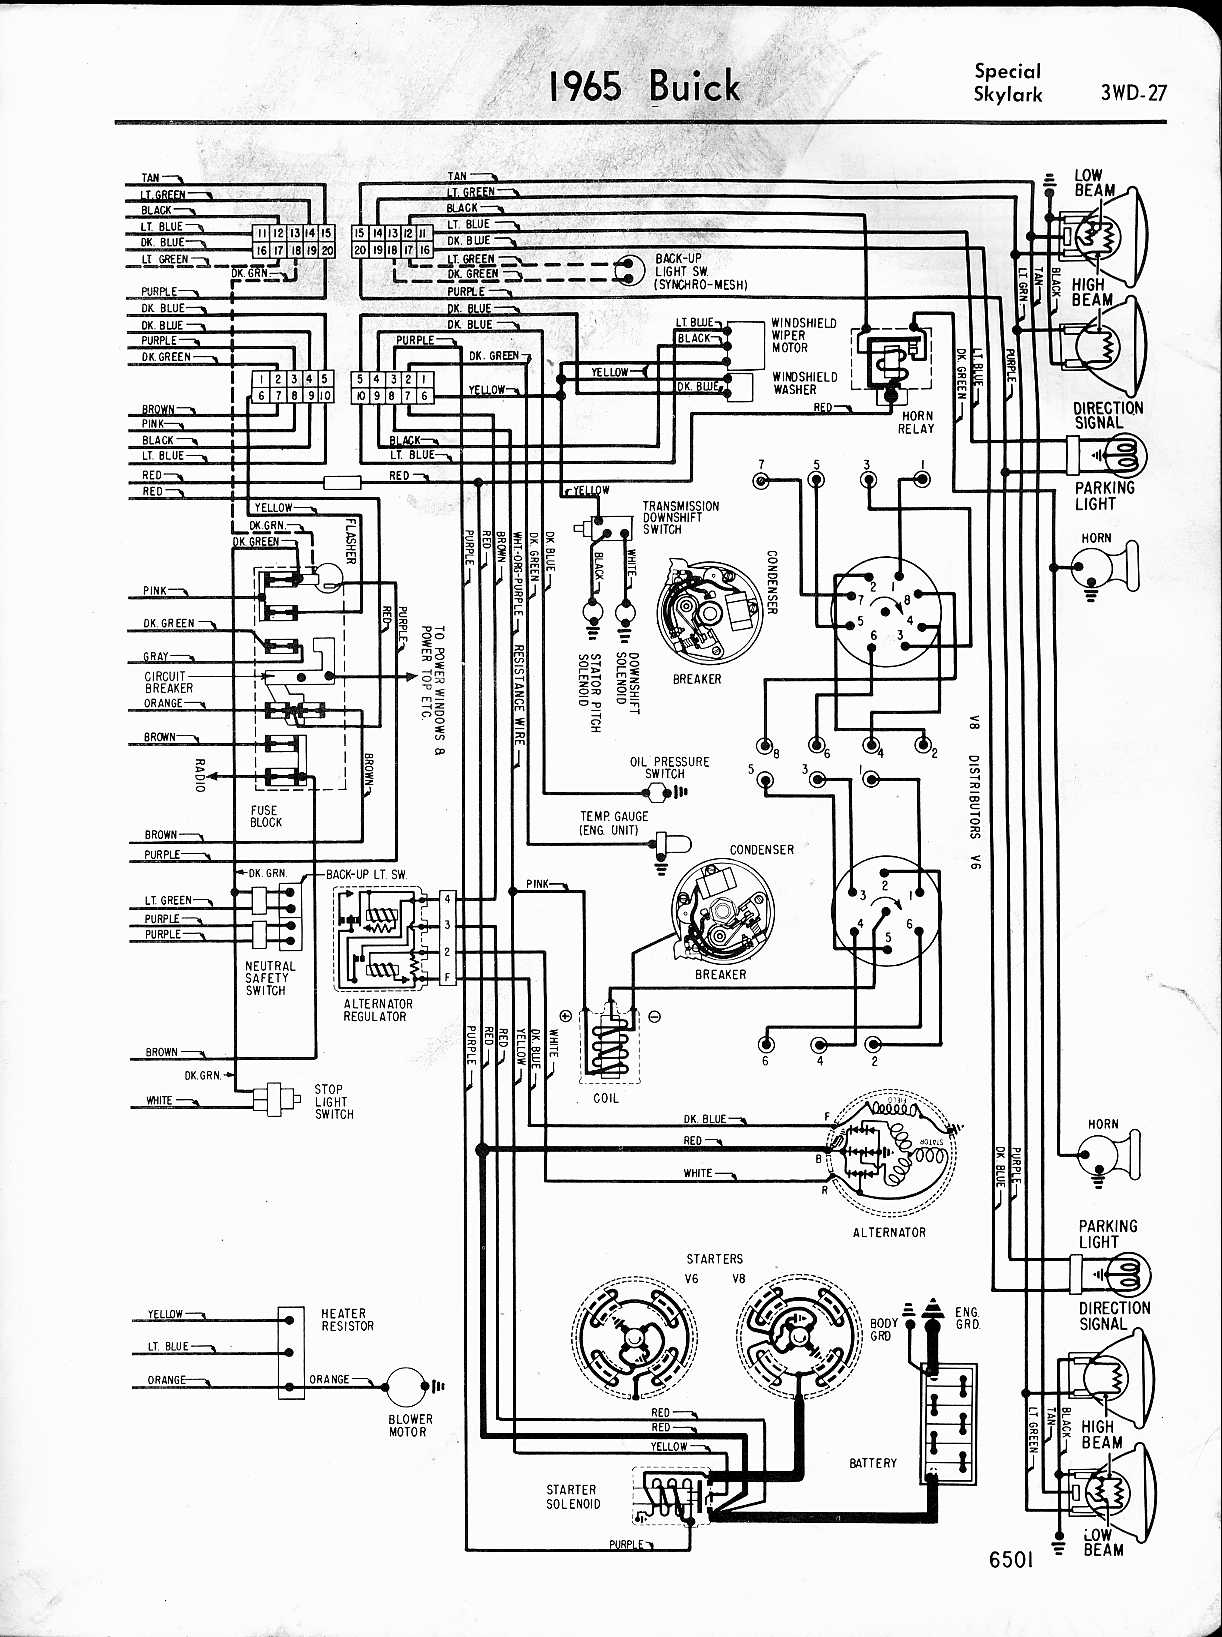 buick electra wiring diagram online schematic diagram u2022 rh holyoak co 1964 buick skylark wiring harness 69 buick skylark wiring harness